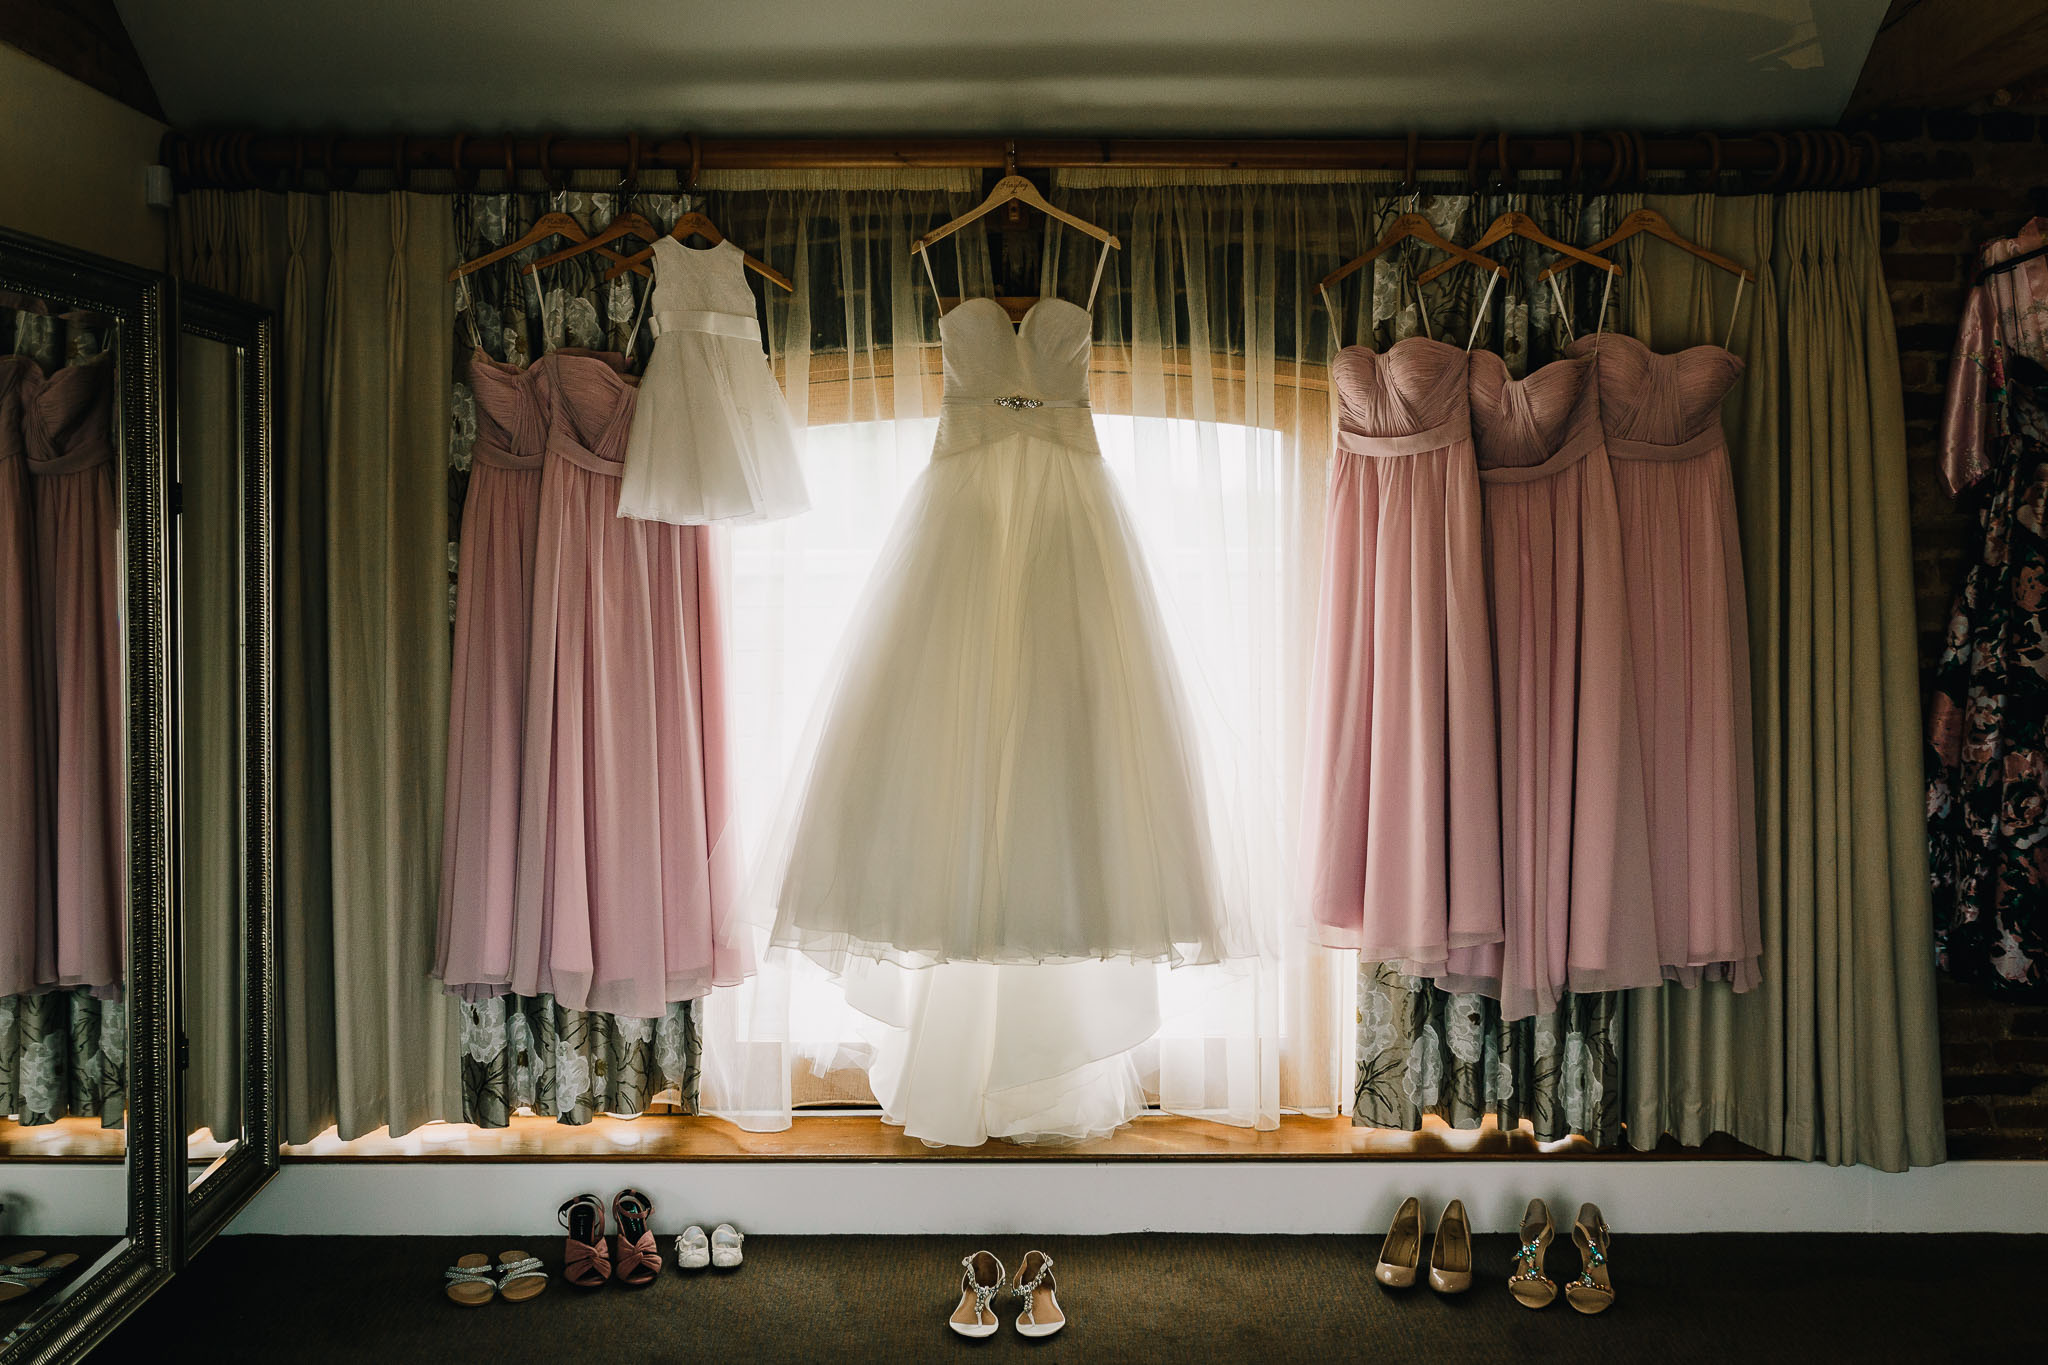 WEDDING DRESS AND BRIDESMAIDS DRESSES HANGING IN WINDOW WITH SHOES